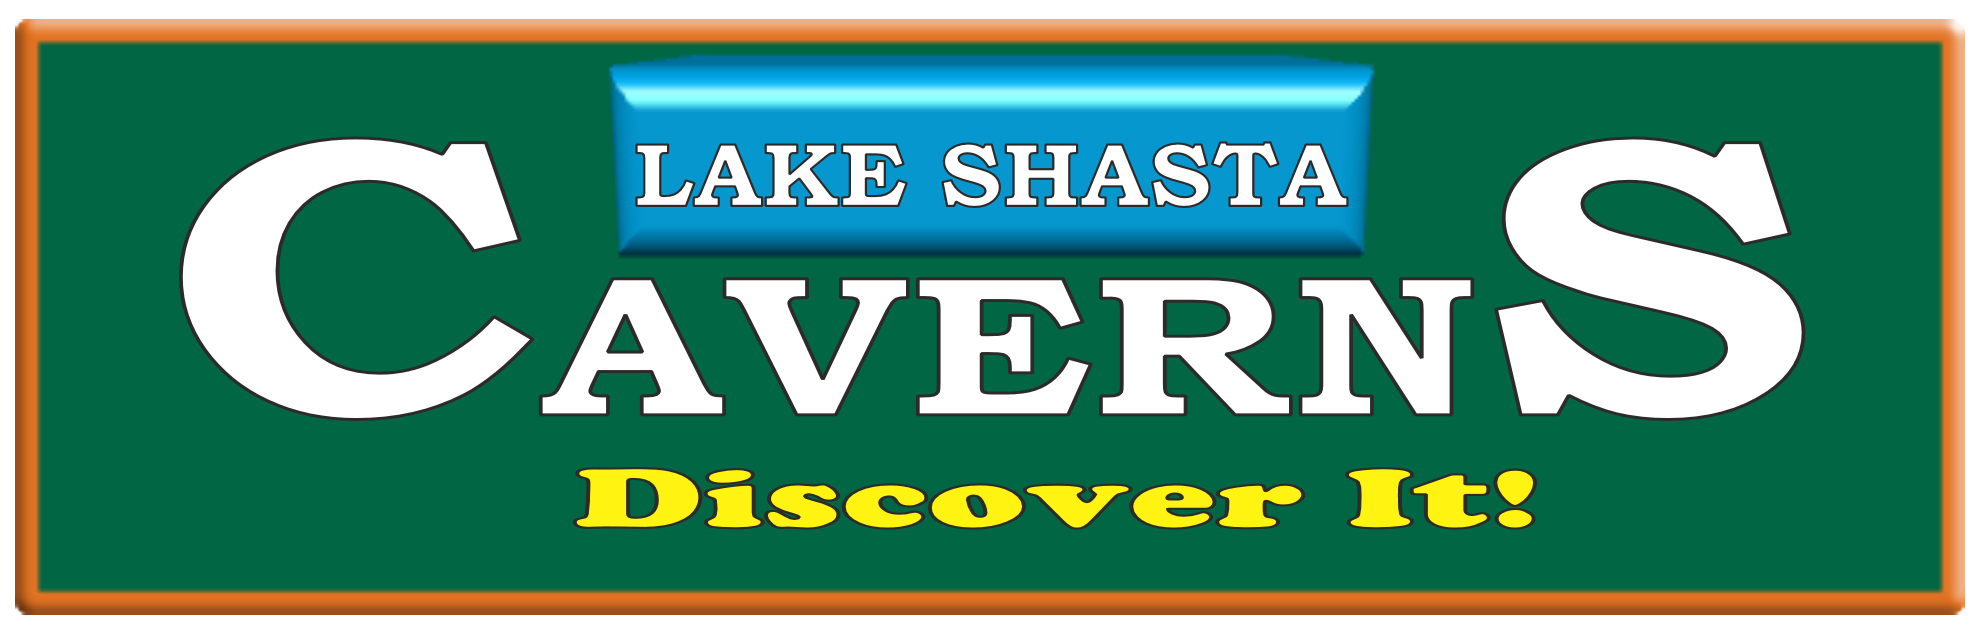 Lake Shasta Caverns National Natural Landmark